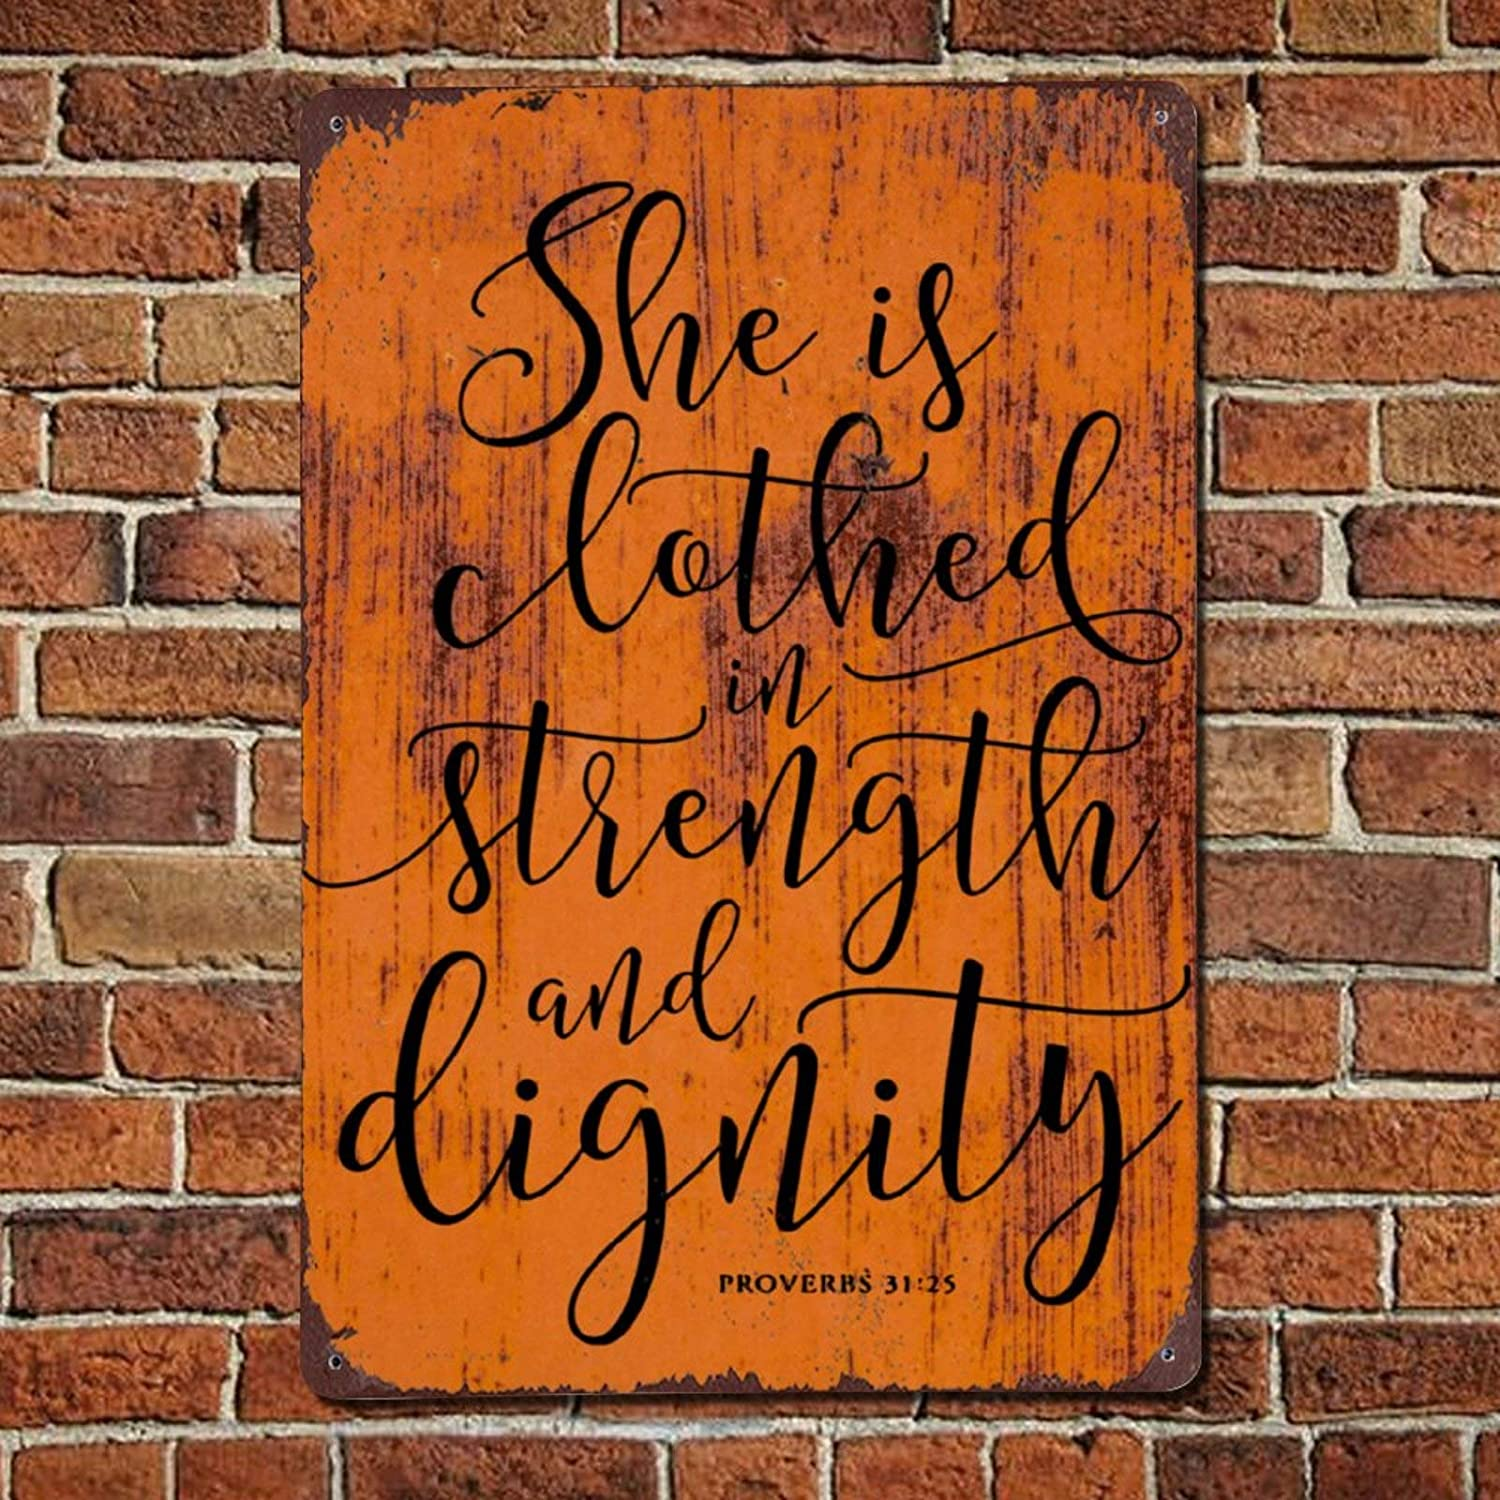 43LenaJon She is Clothed Strength and Dignity Vintage Quote Metal Sign,Retro Saying Words Sign,Rustic Inspirational Quotes Bar Men Cave Garden Wall Art,Farmhouse Aluminum Sign,Home Decor